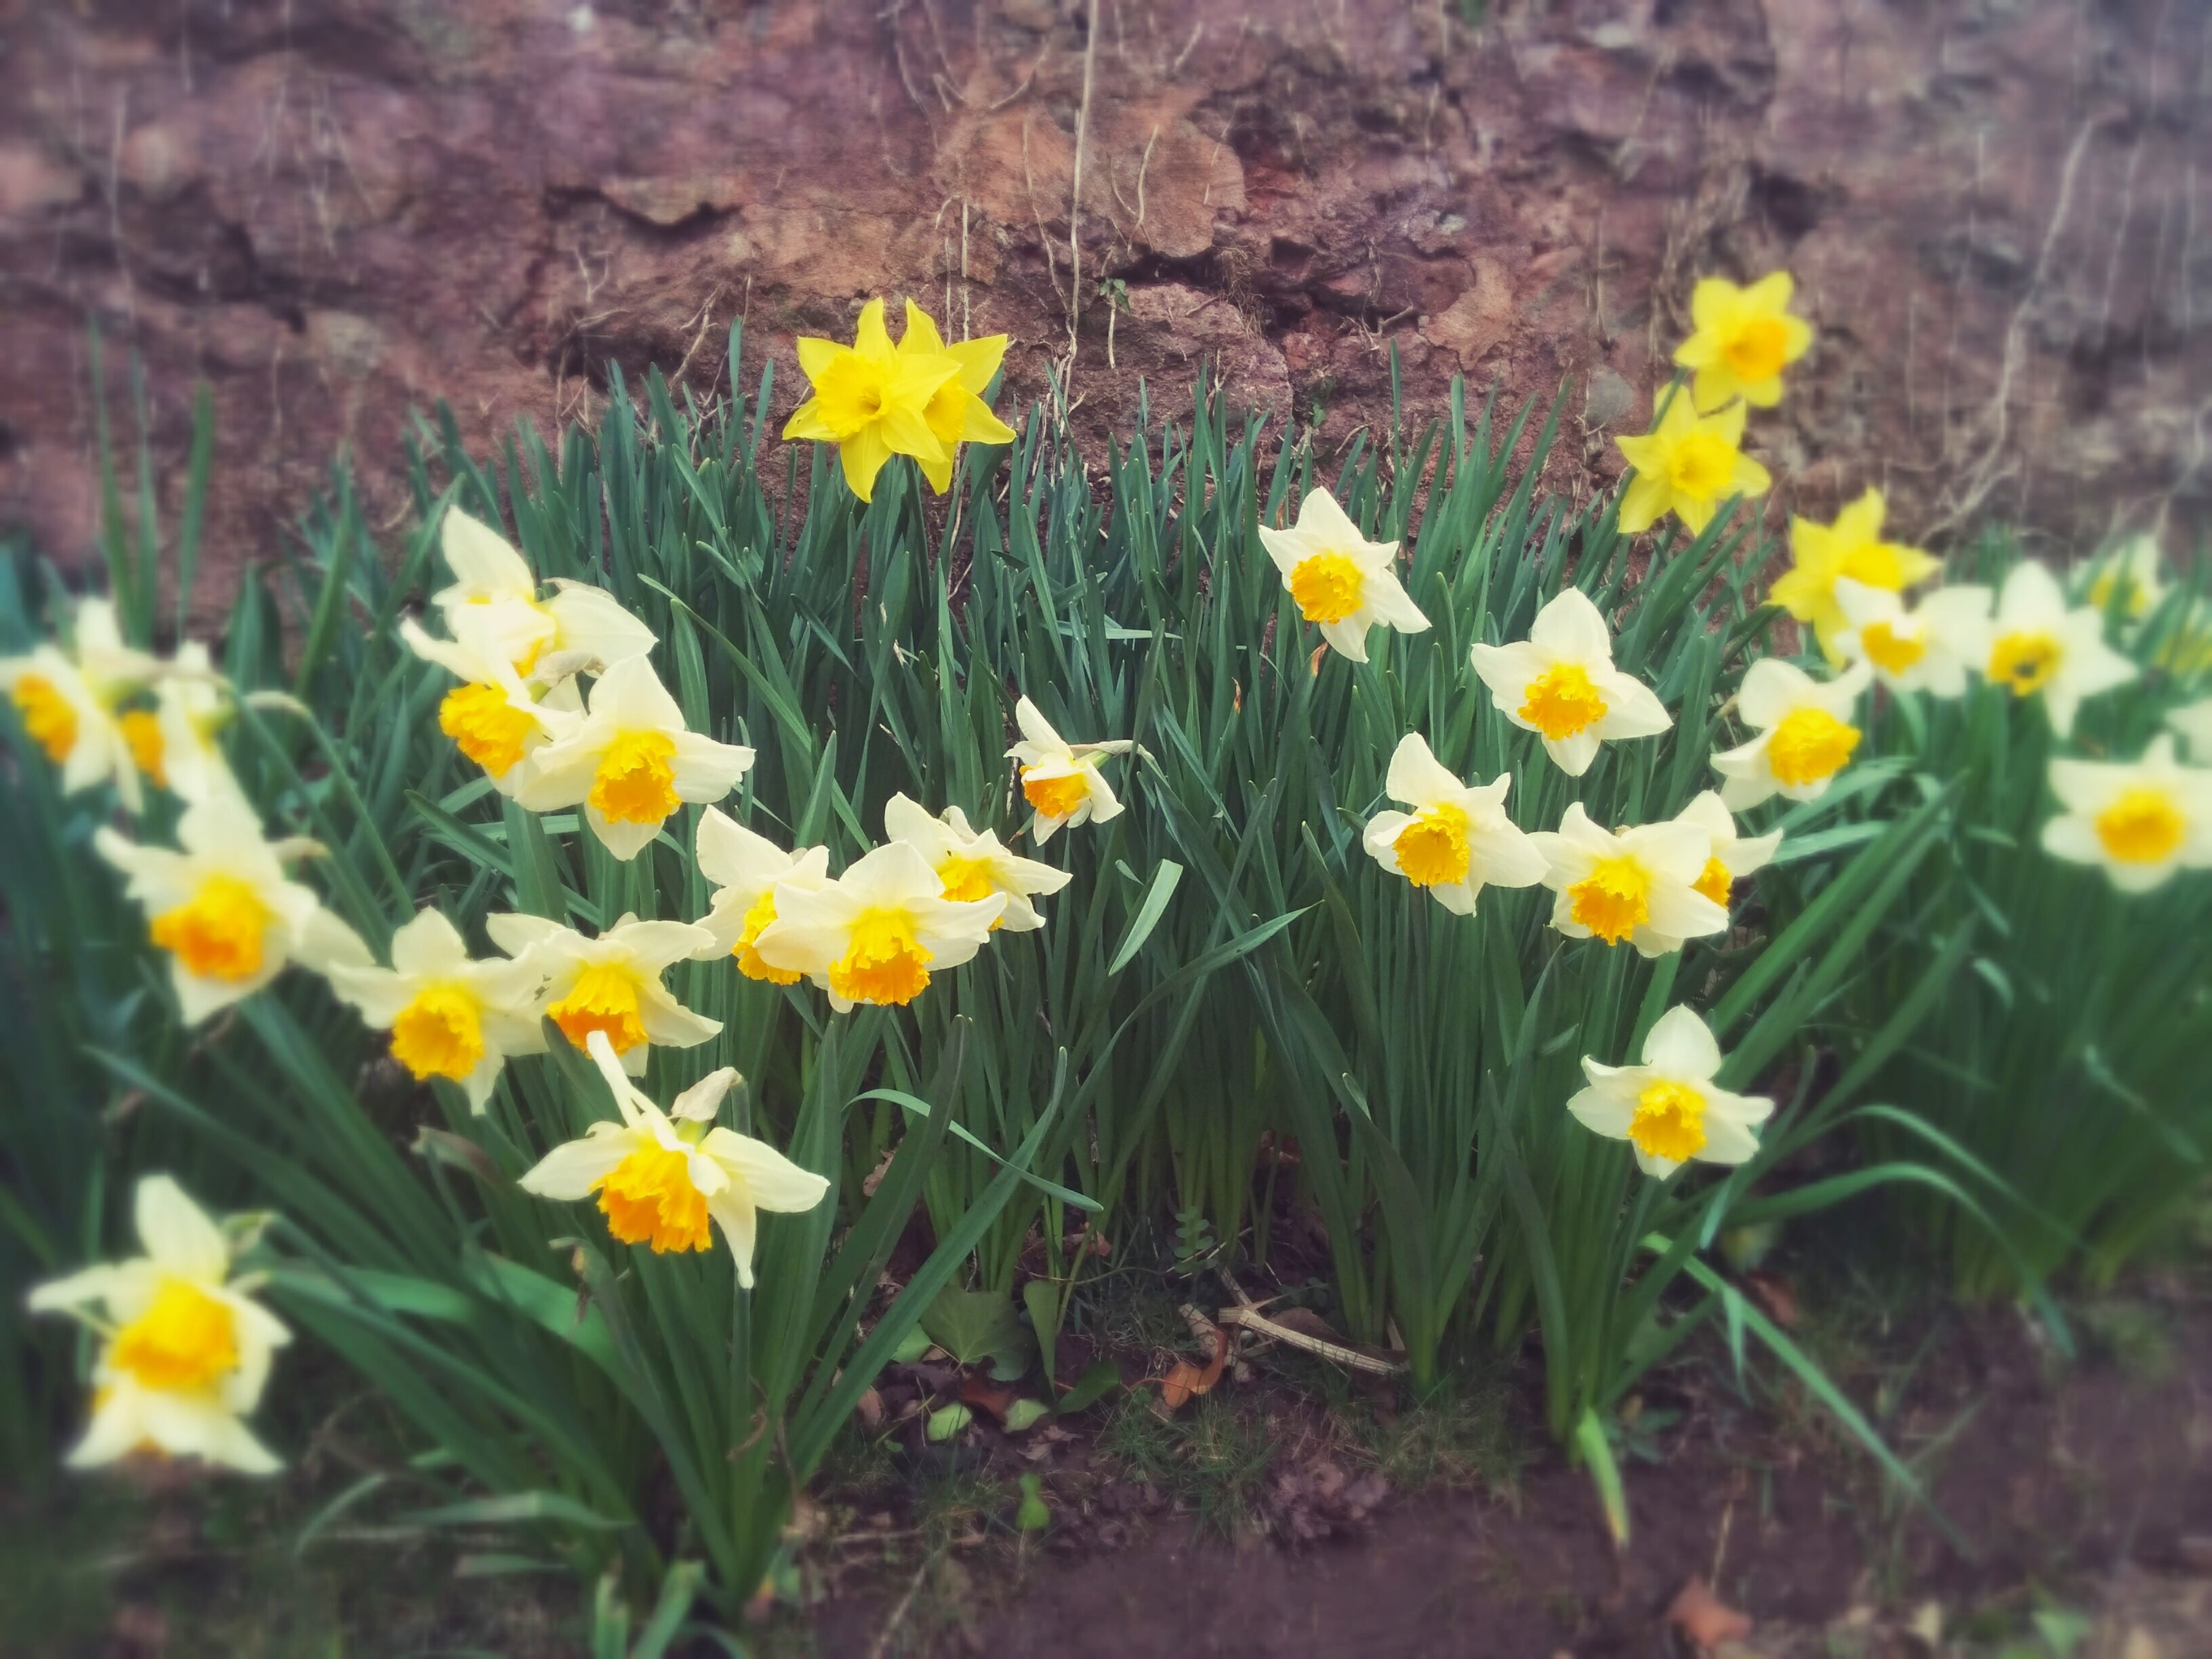 Giving-life-colour-daffodils-mid